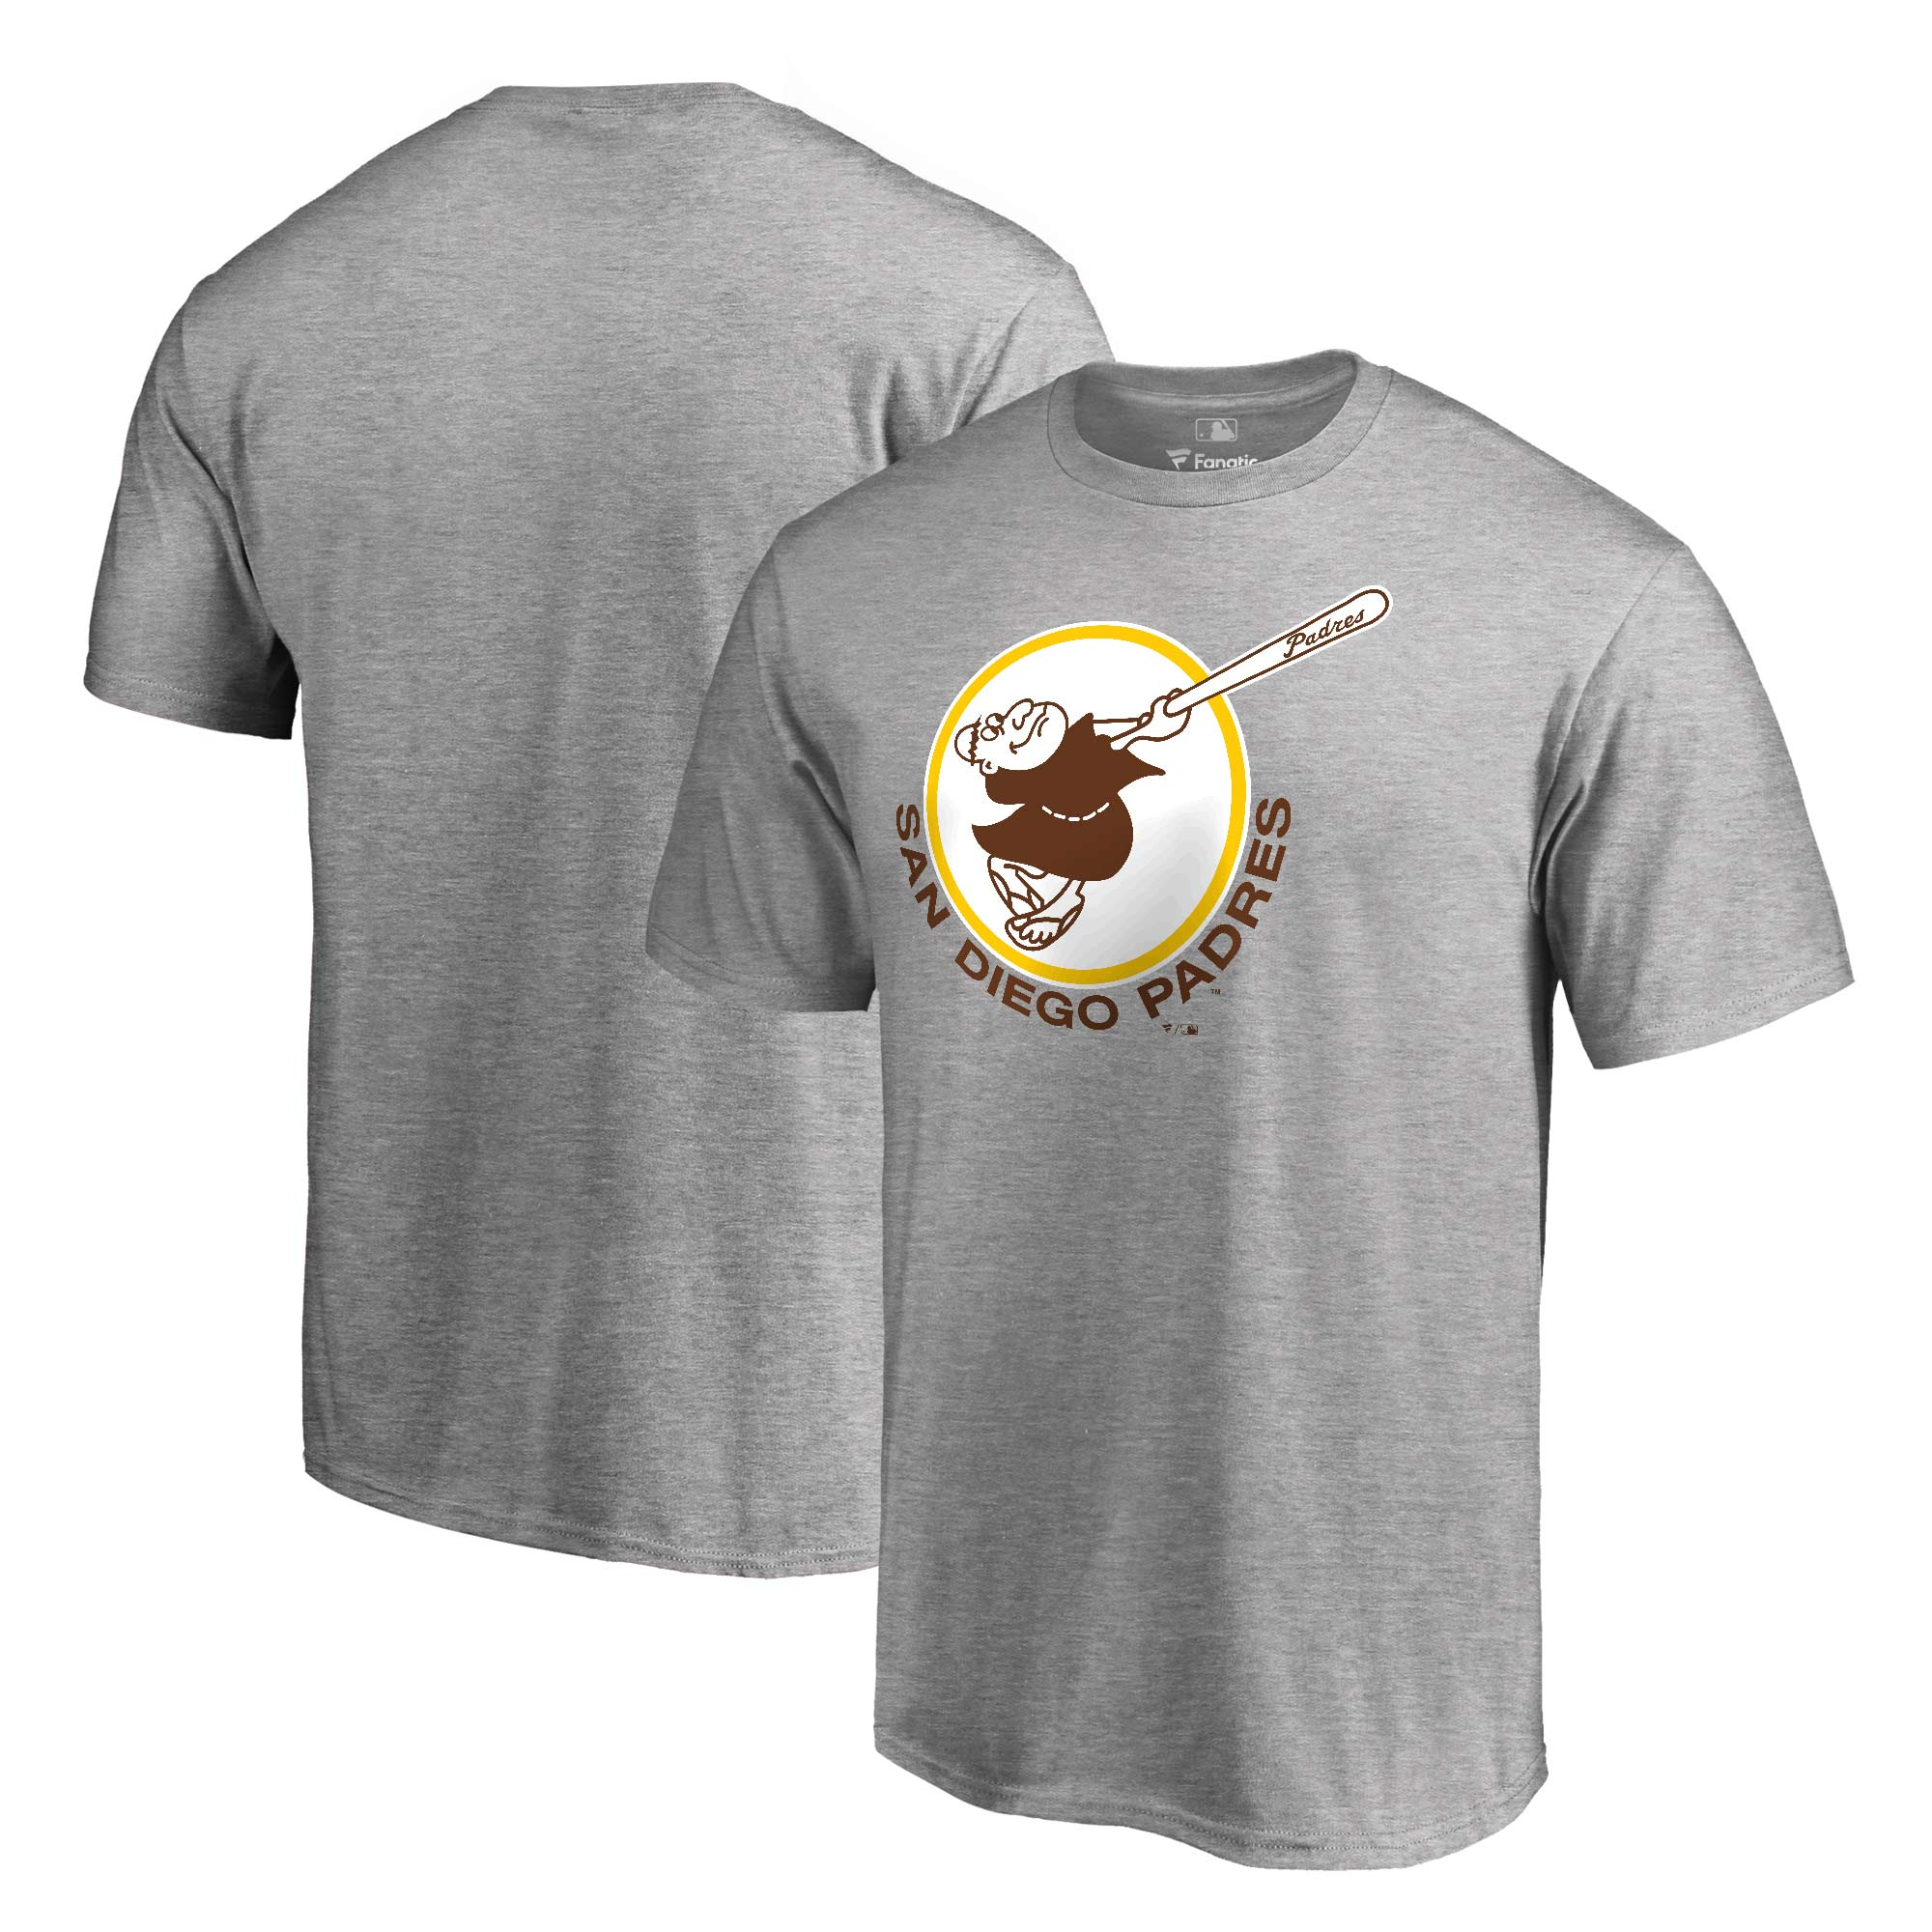 San Diego Padres Fanatics Branded Cooperstown Forbes T-Shirt - Heathered Gray